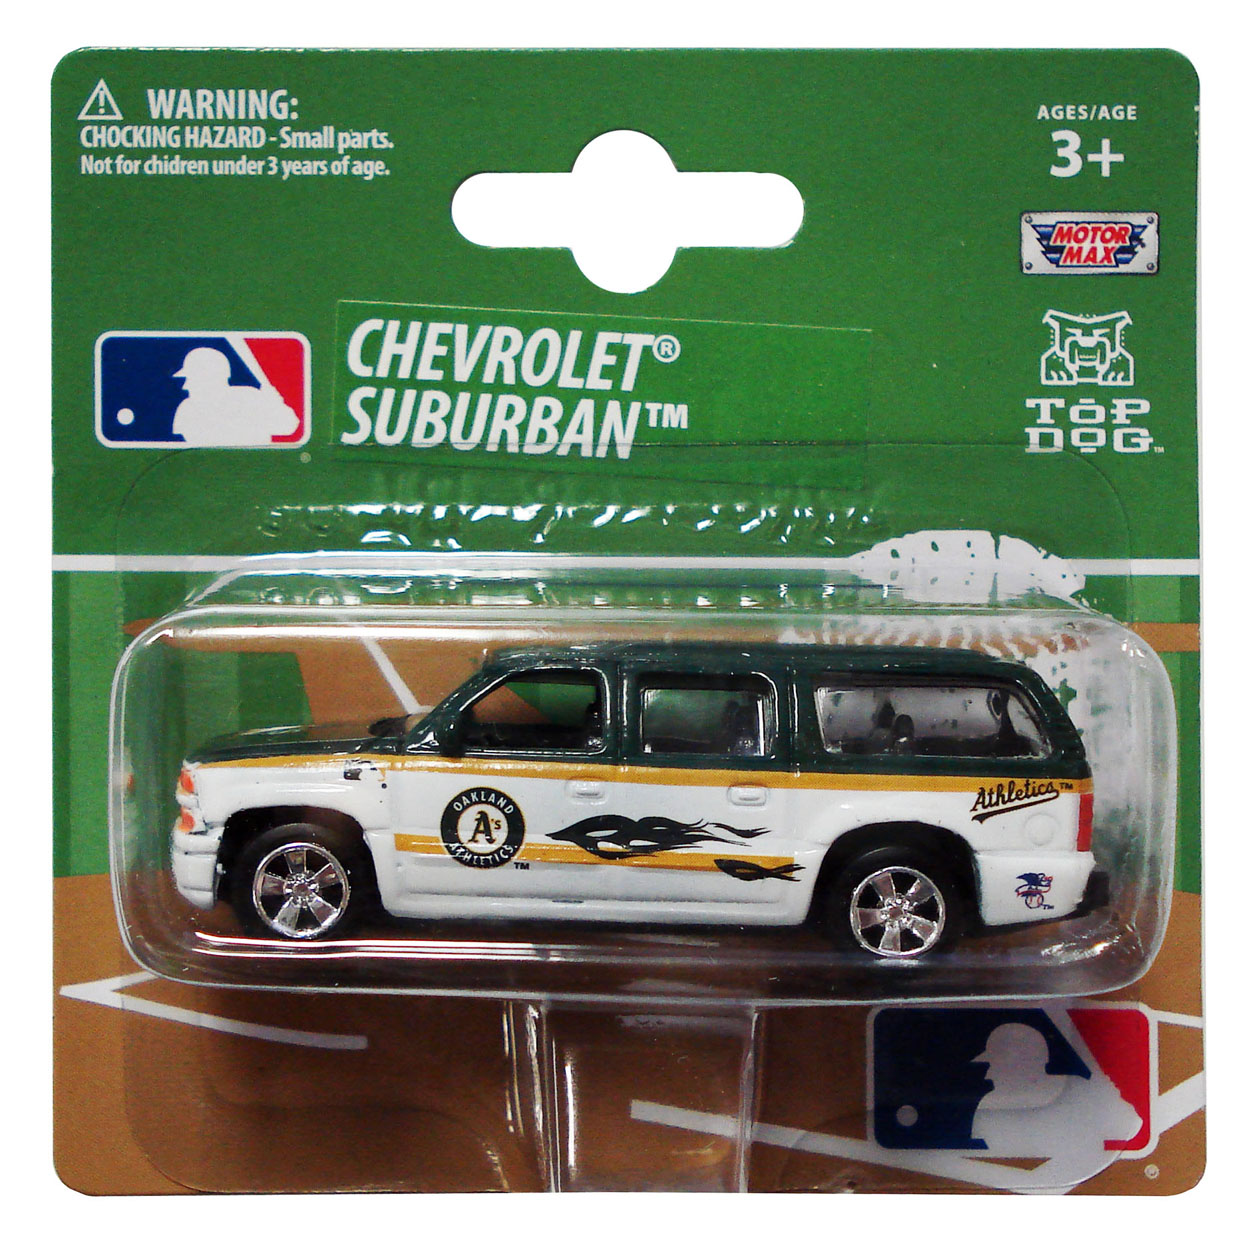 Top Dog 1:64 Chevy Suburban - MLB Oakland Athletic